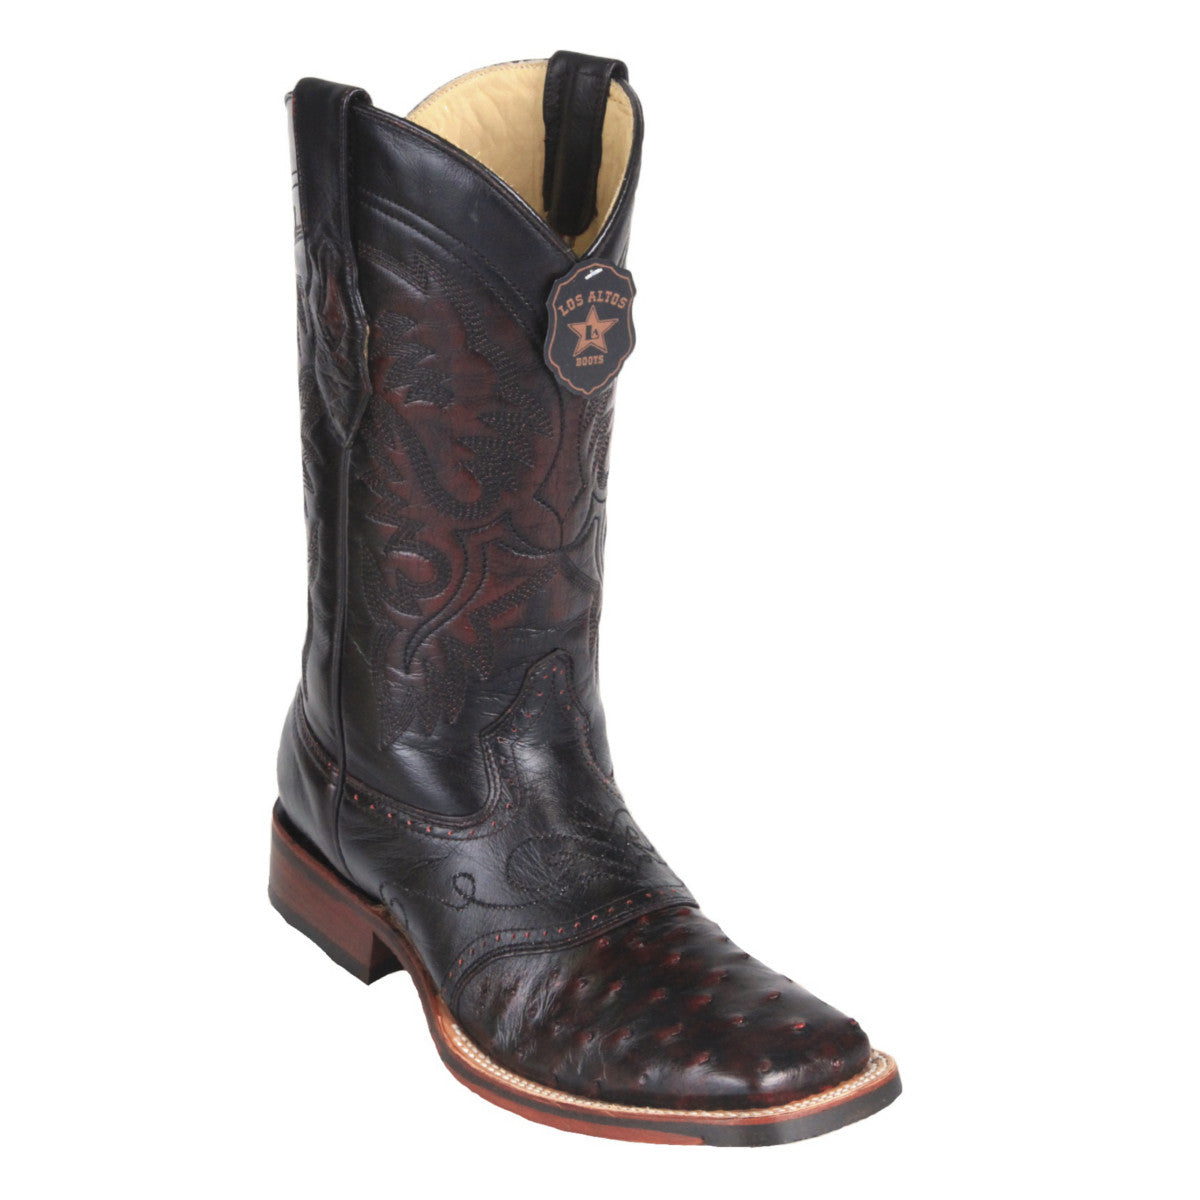 Los Altos Boots Wide Square Toe Ostrich w/Saddle